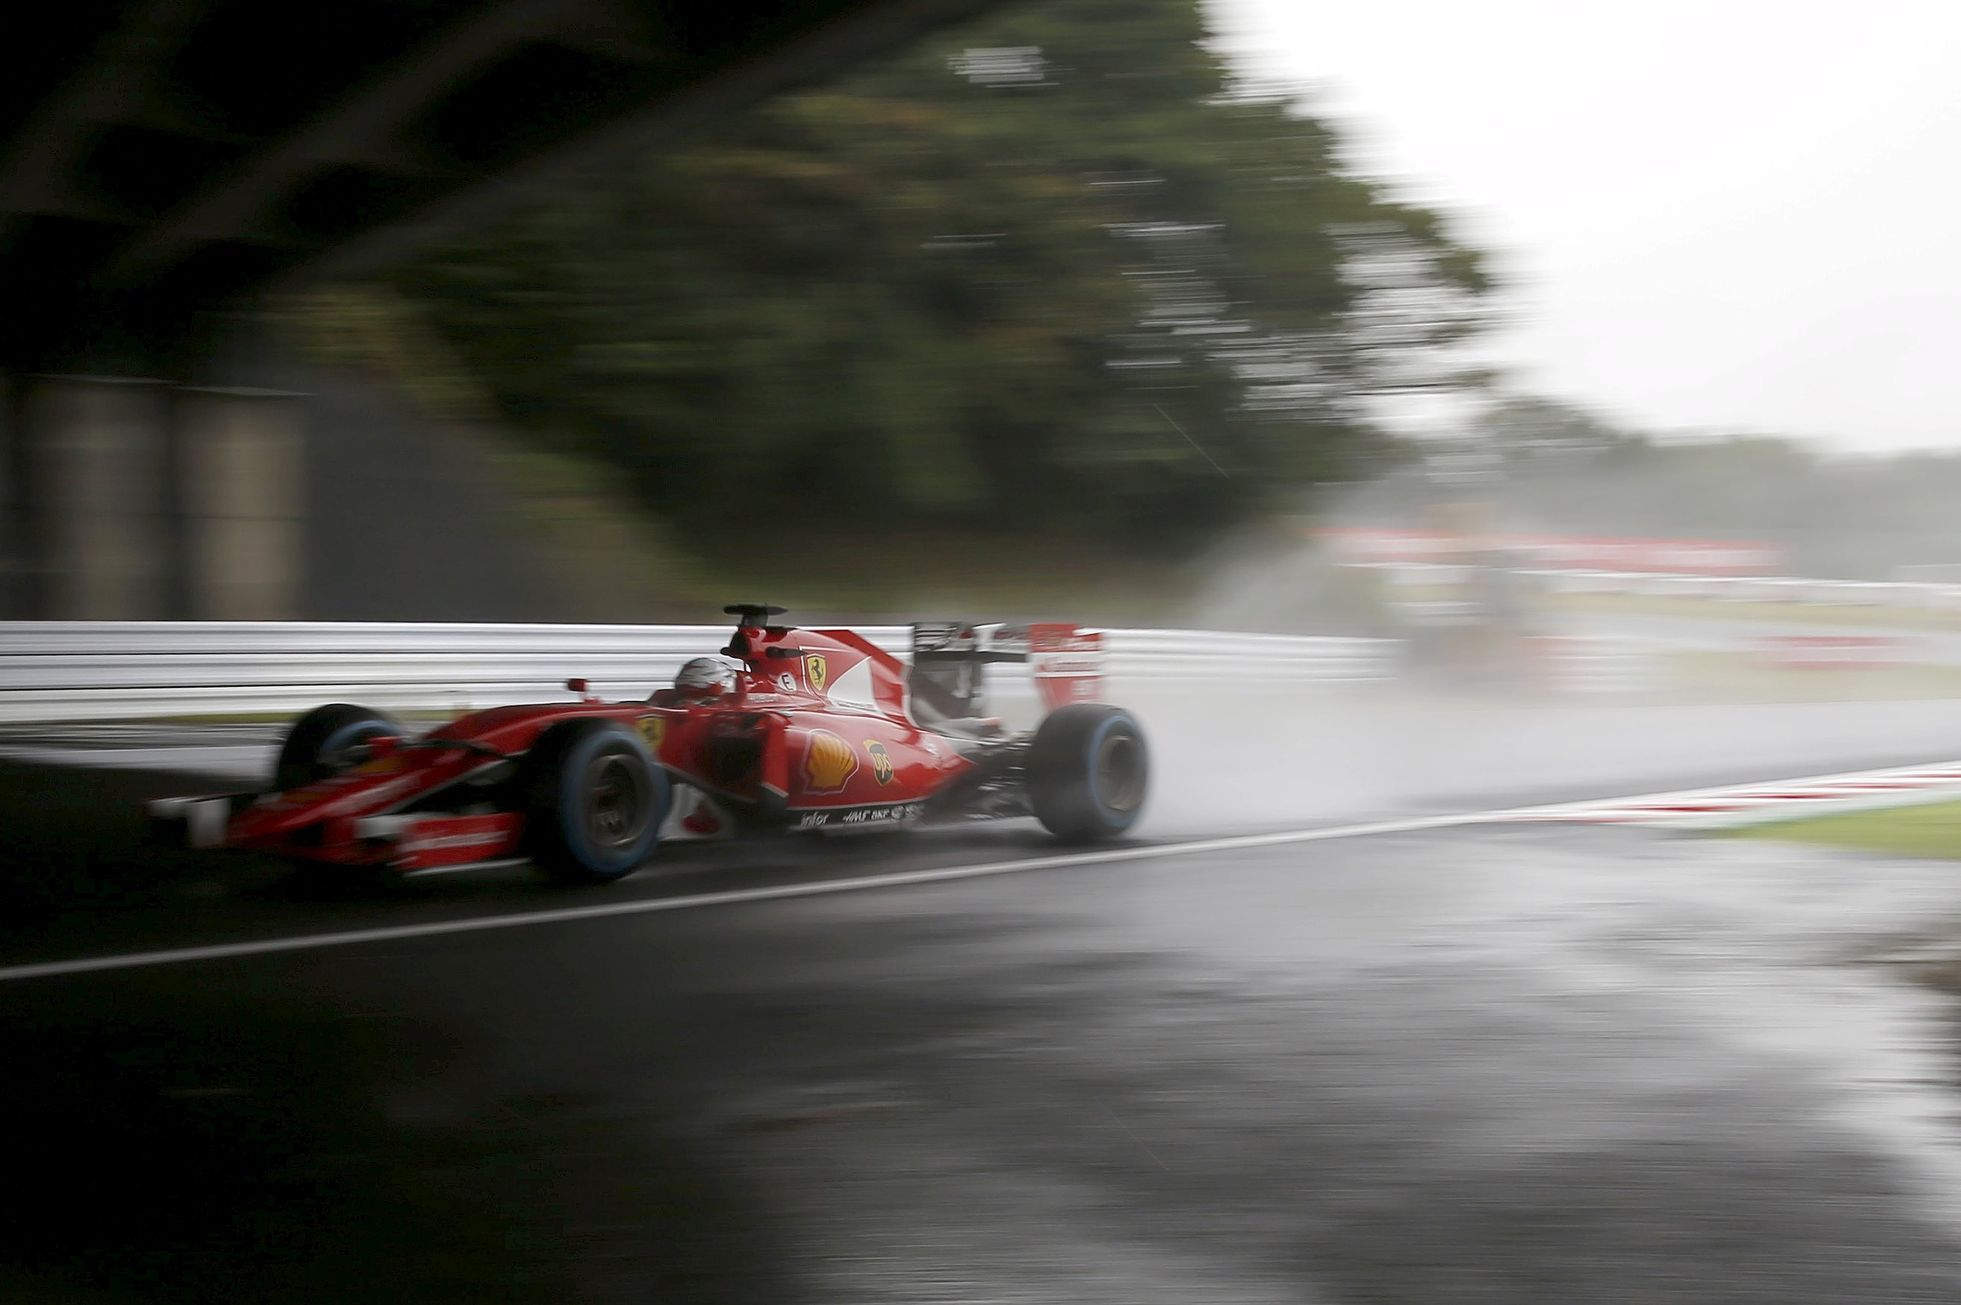 Ferrari Formula One driver Vettel of Germany drives during the second practice session in Suzuka